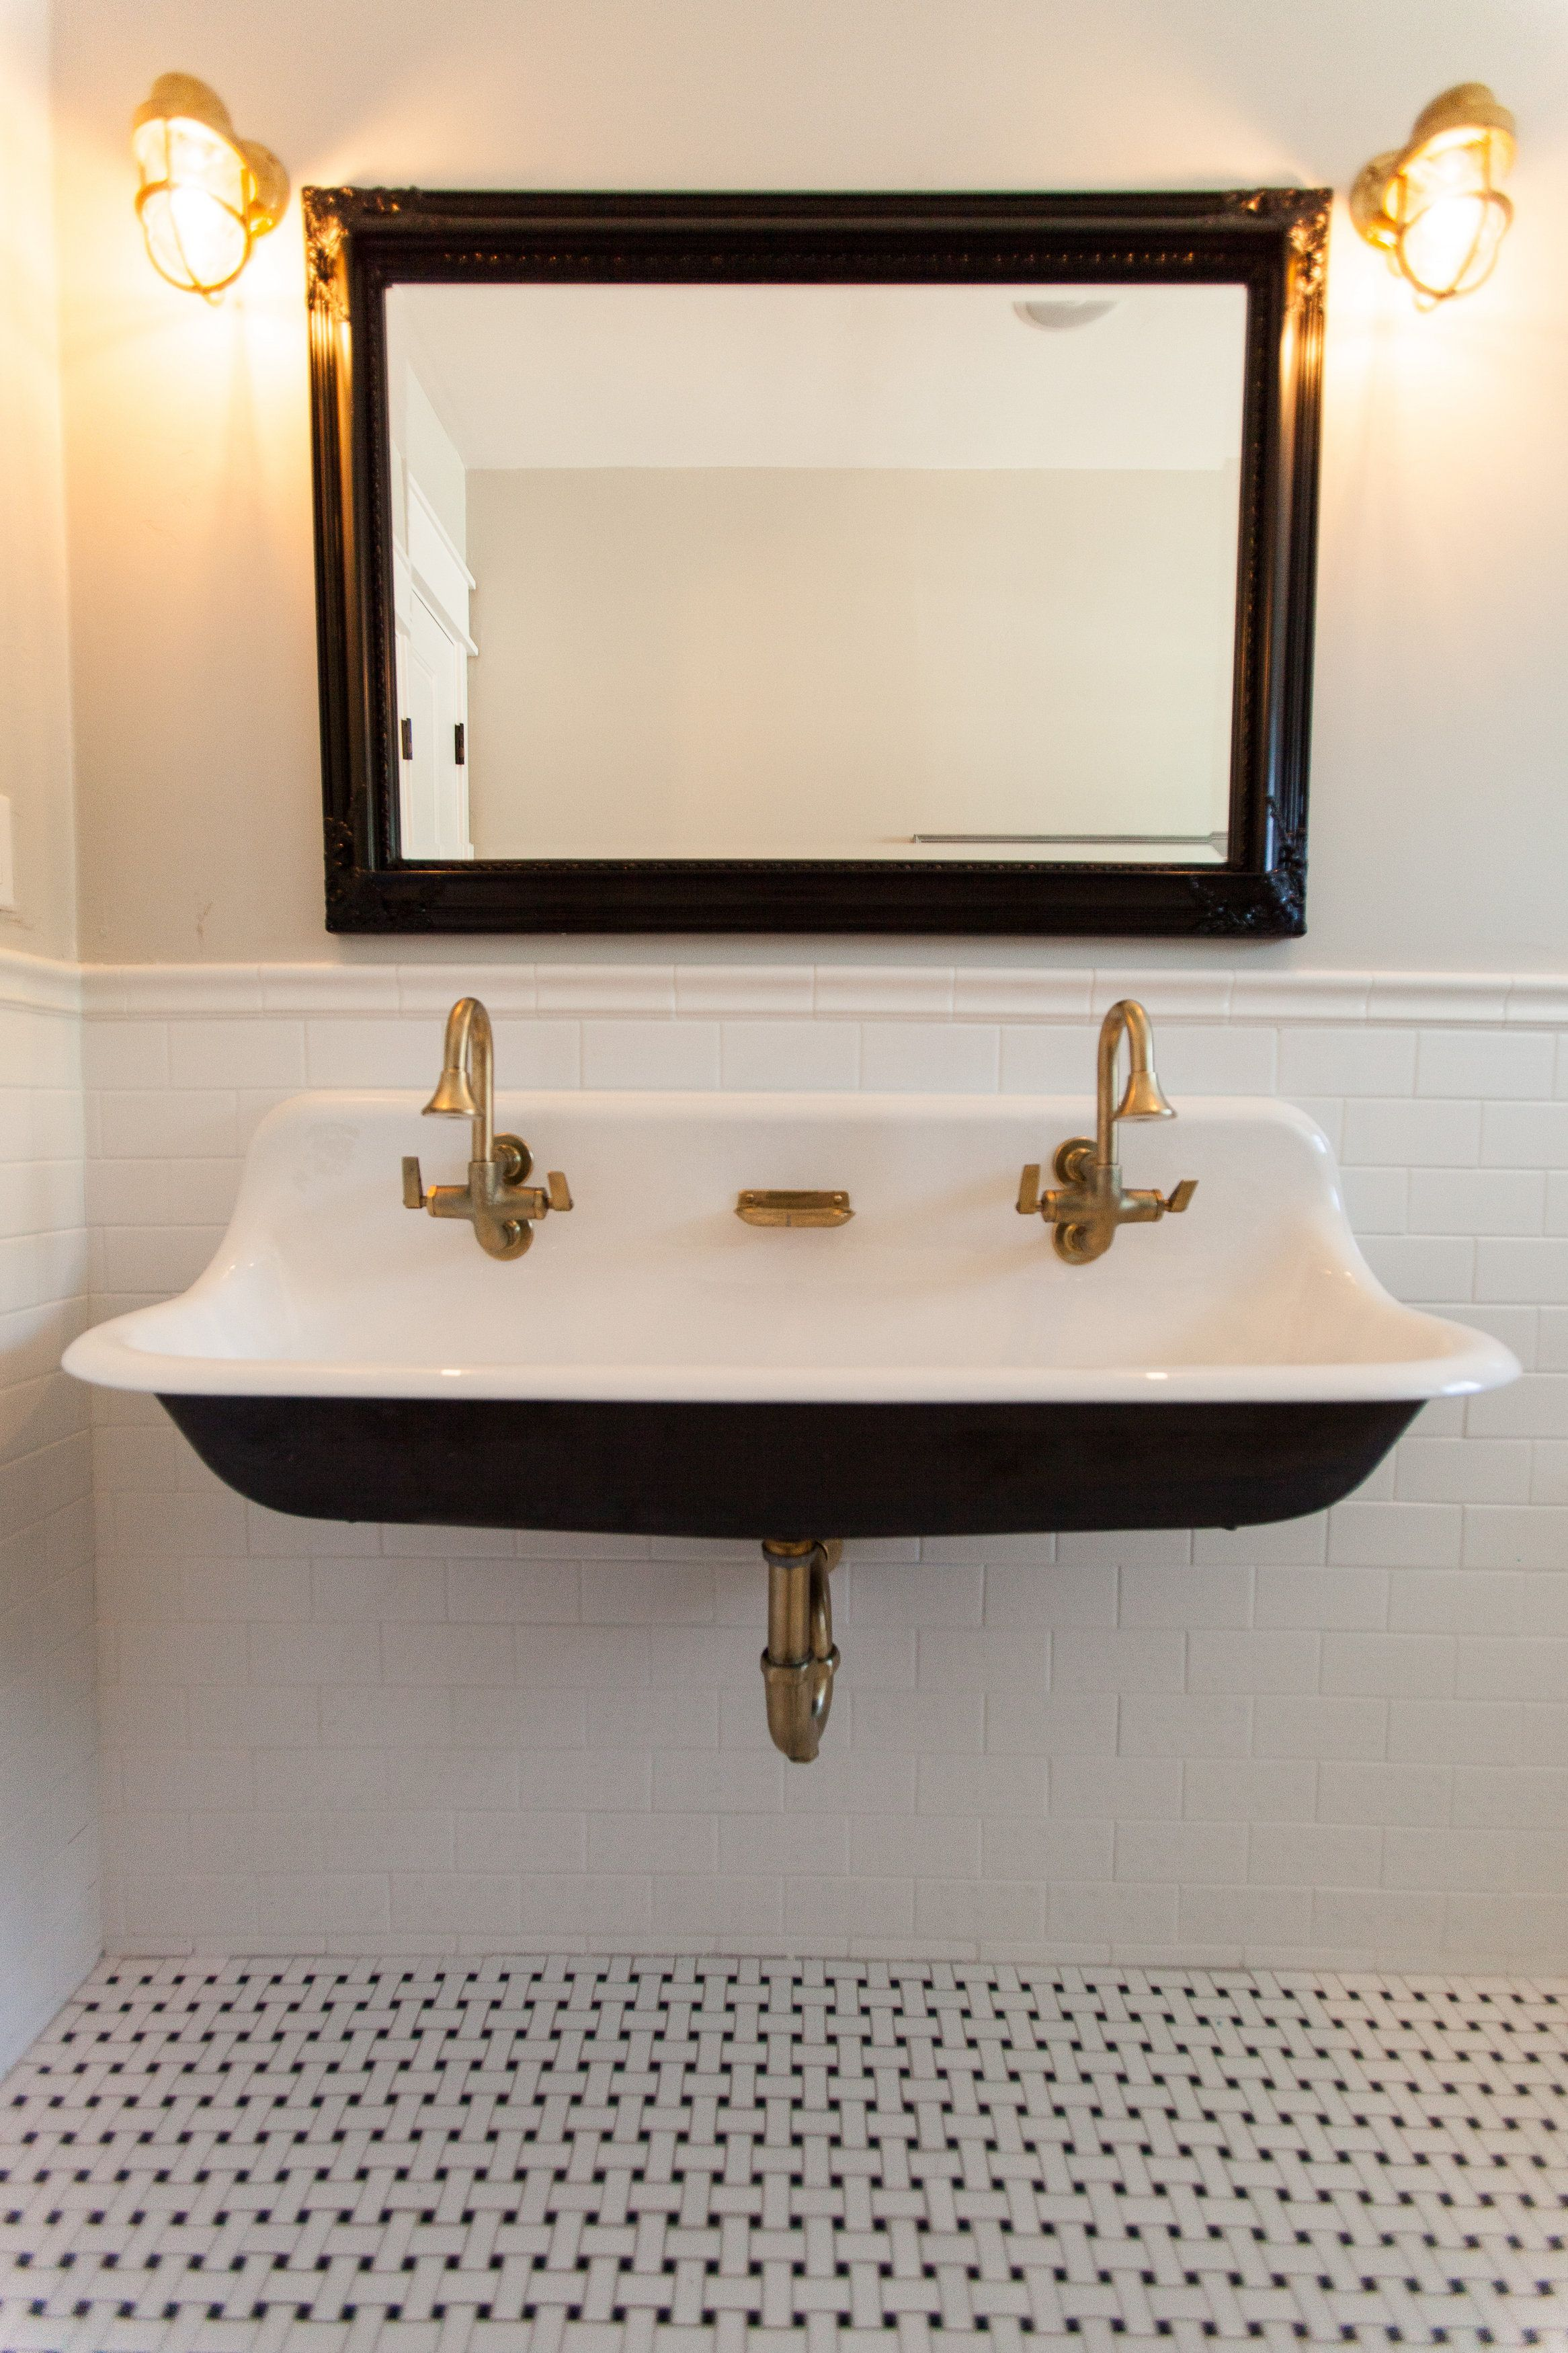 Cast Iron Bathroom Sink Cast Iron Trough Sink With Brass Hardware By Rafterhouse